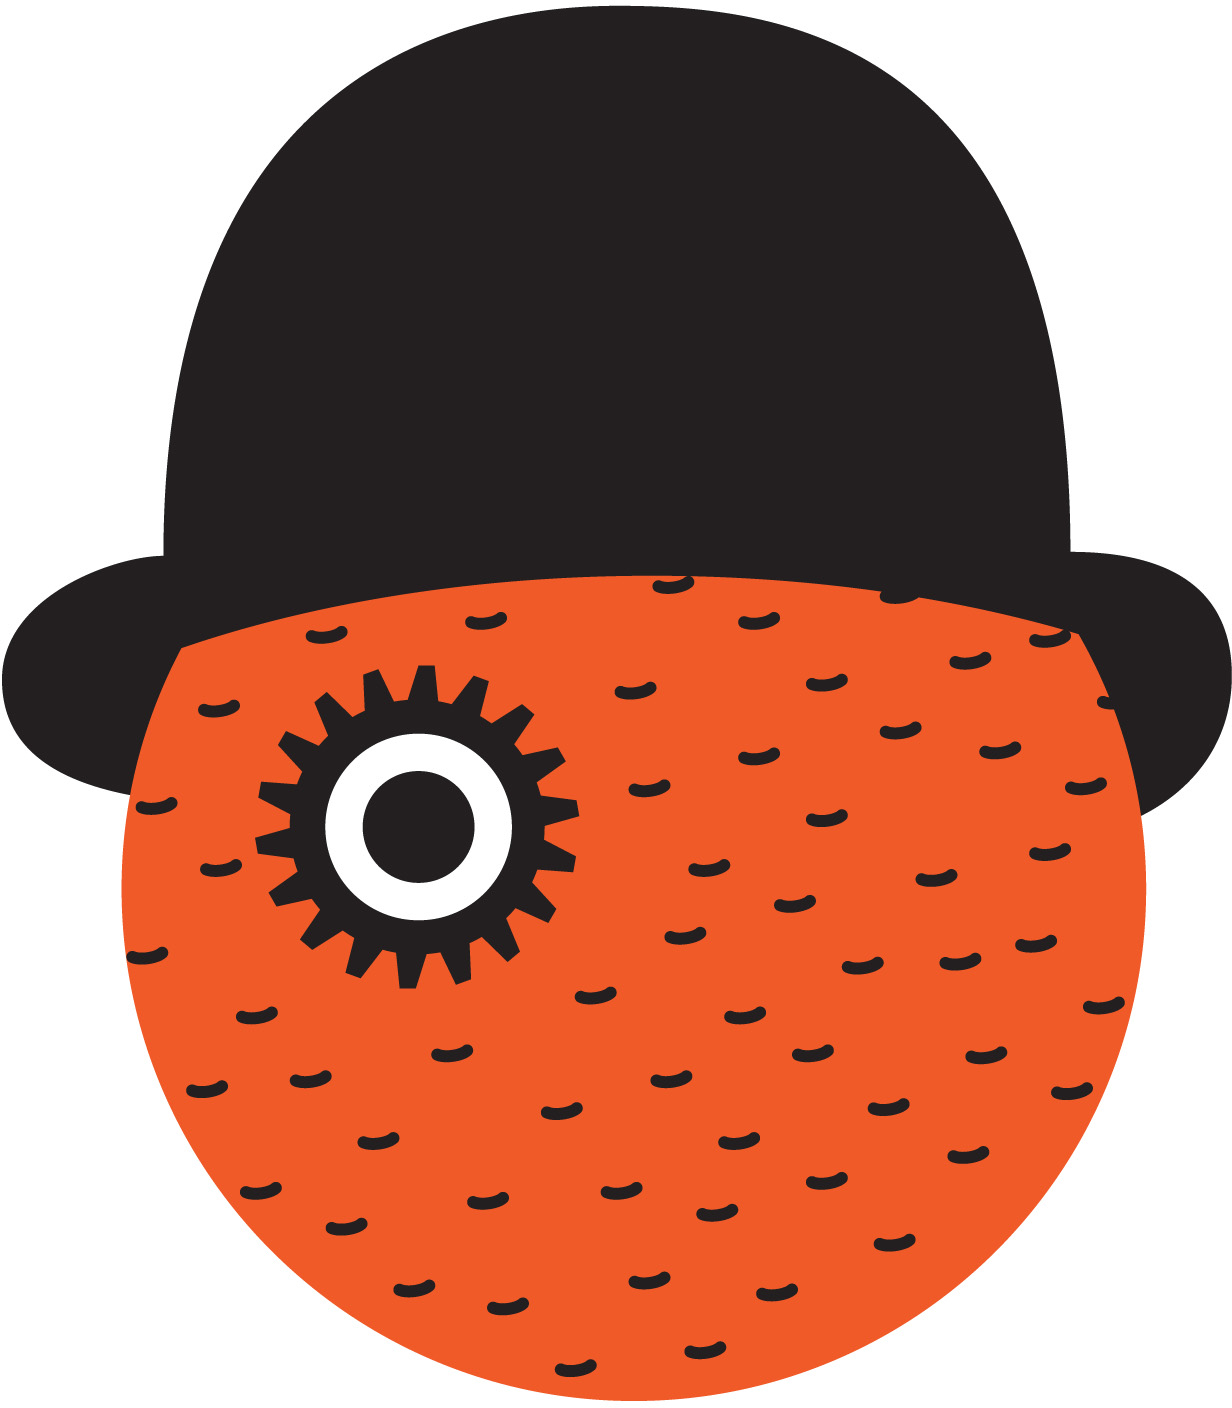 A Clockwork Porange